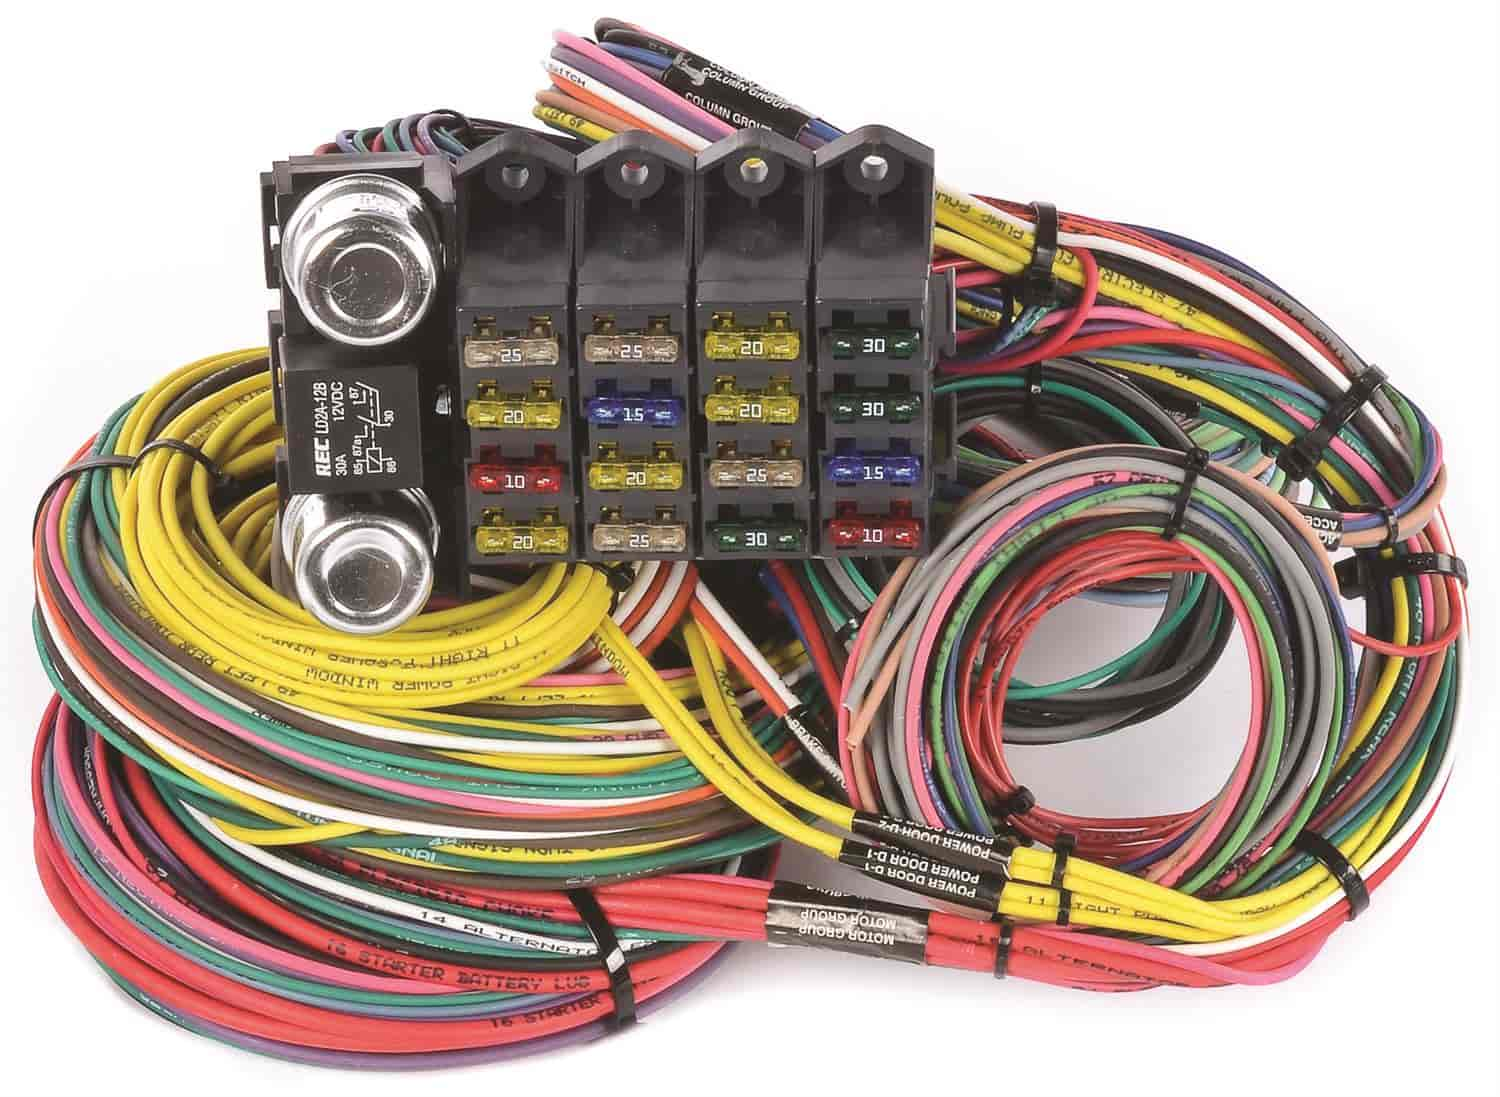 jegs performance products 10405 universal wiring harness 20 rh jegs com universal wiring harness labeled universal wiring harness 20-circuit